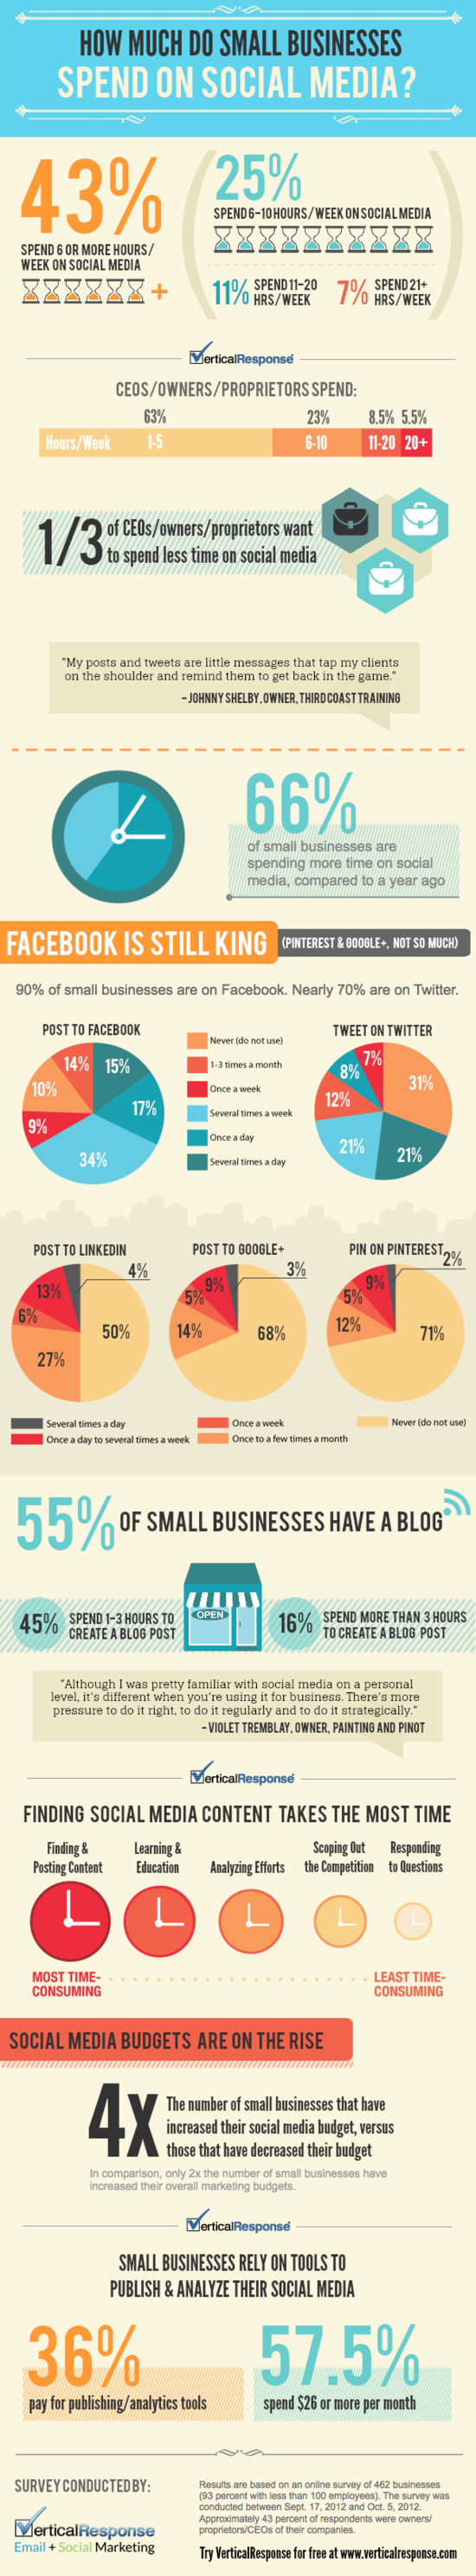 How_much_do_small_businesses_spend_on_social_media